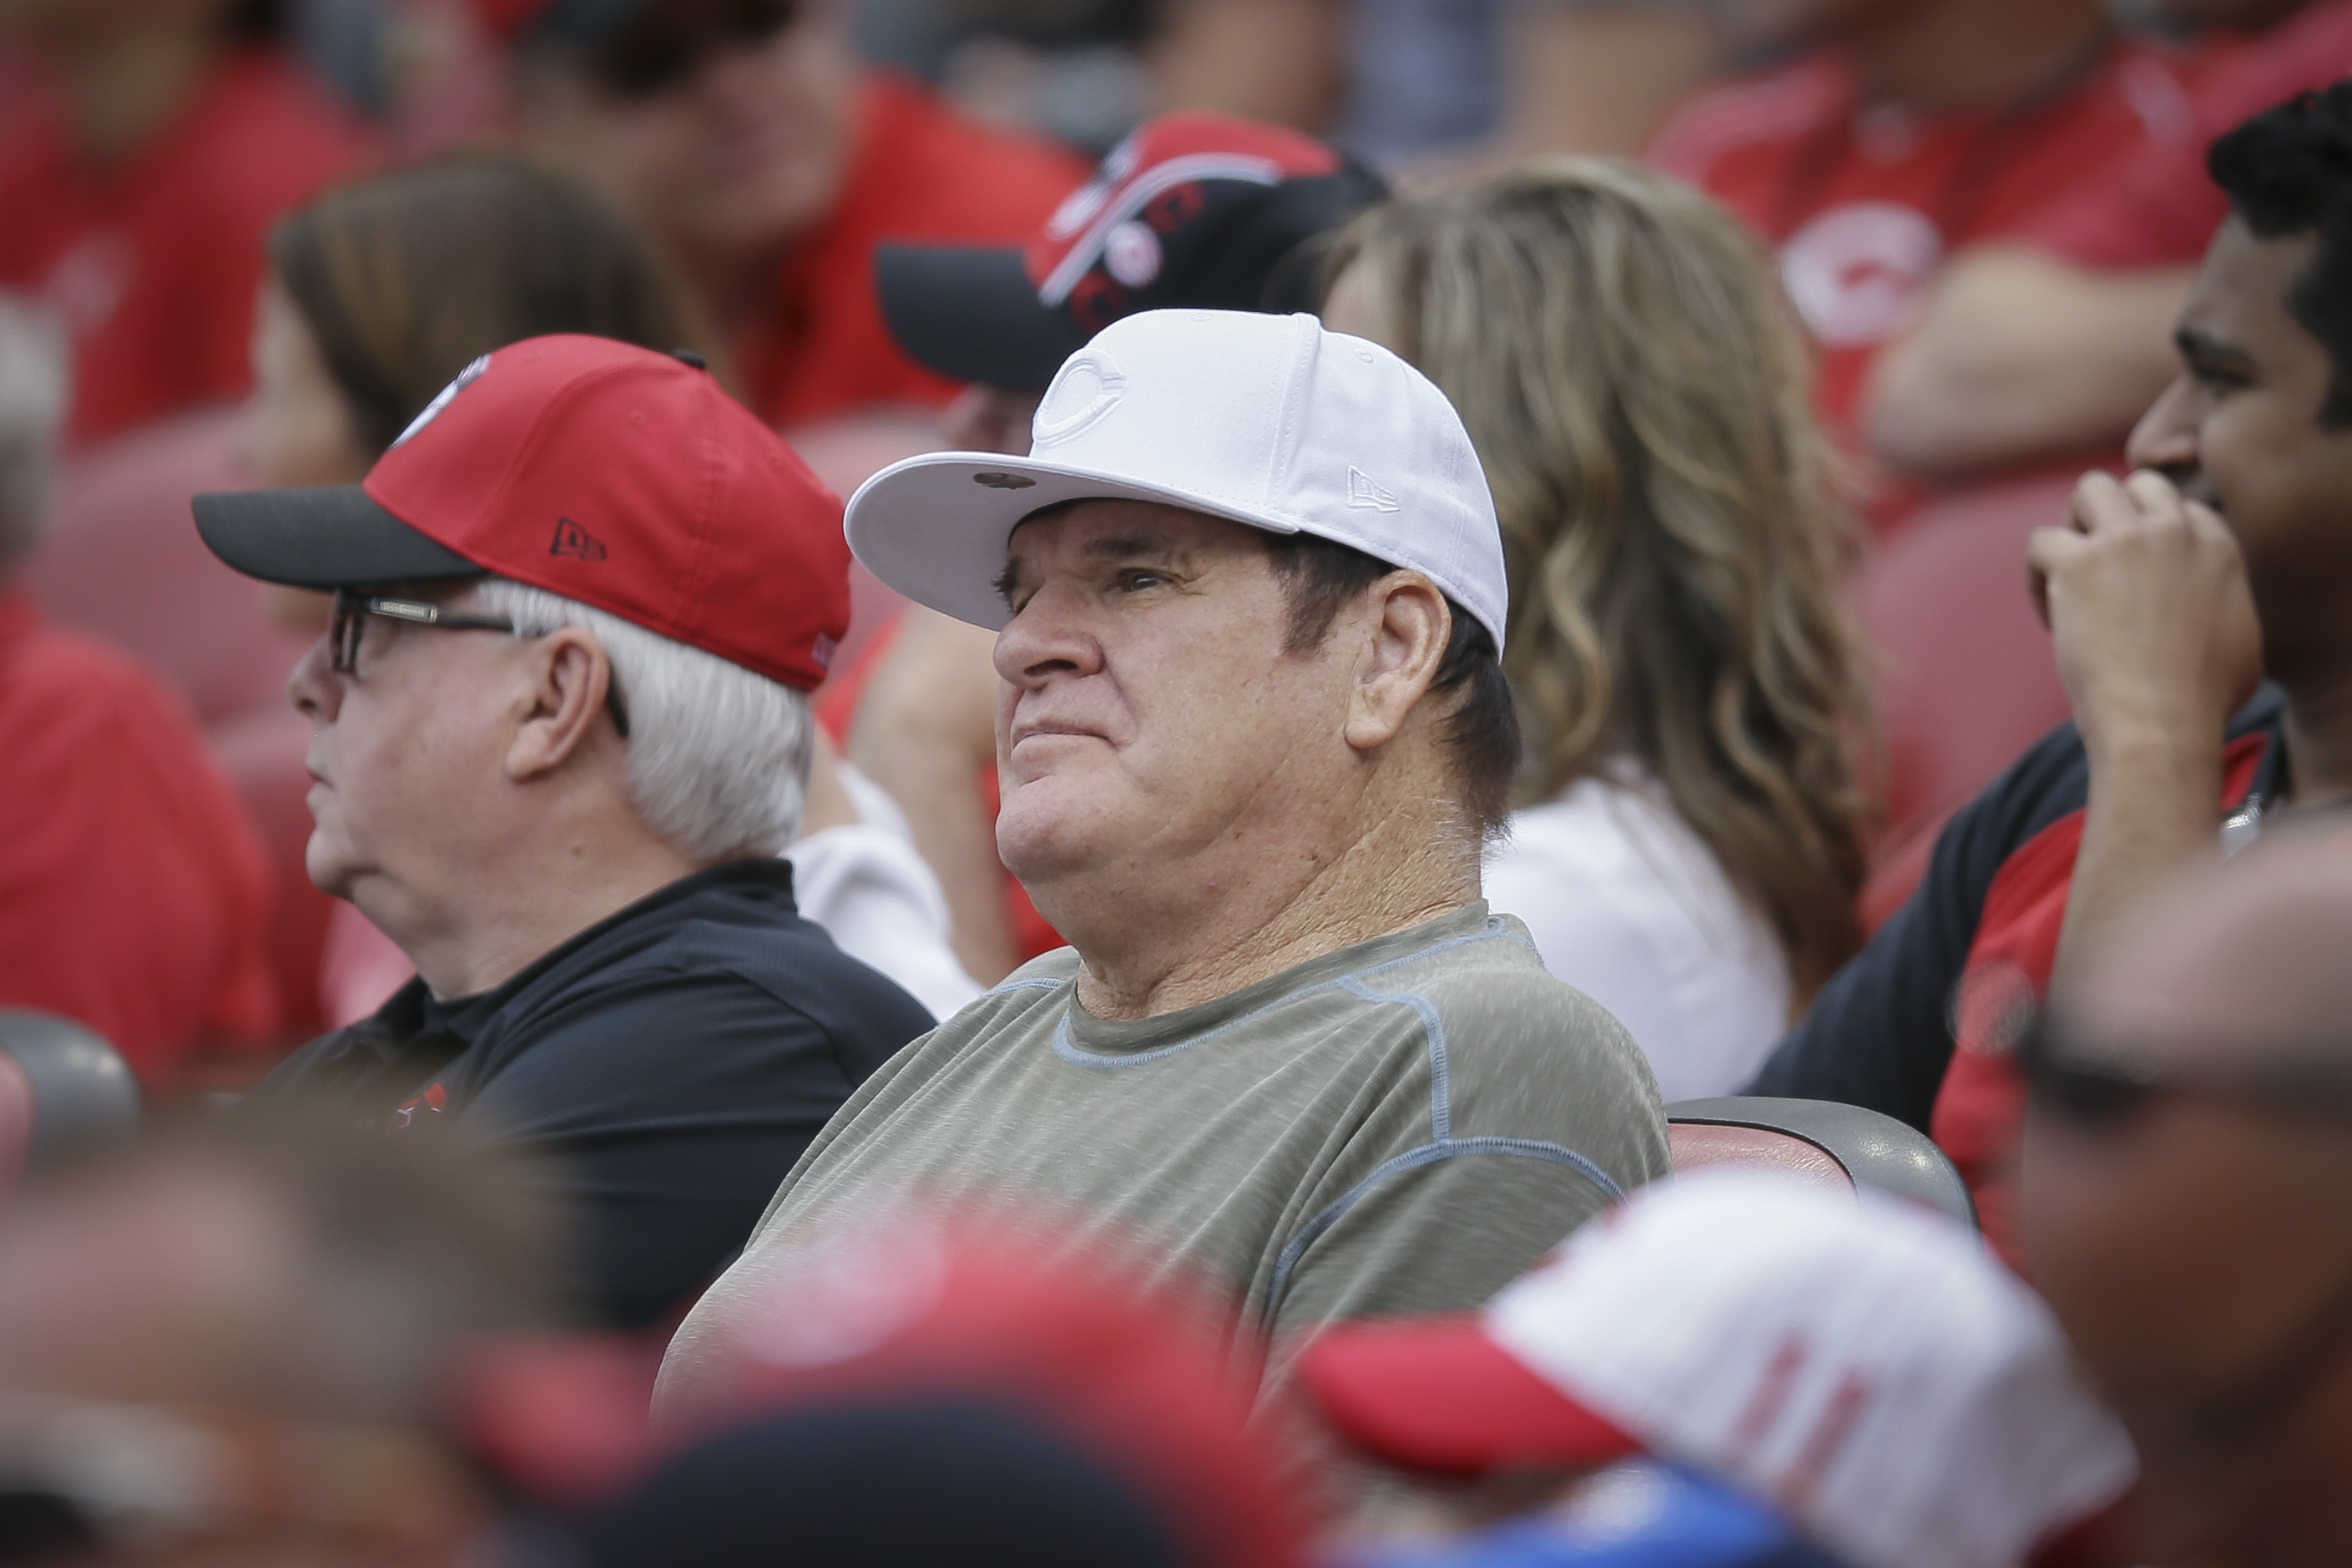 Former Cincinnati Reds' player and manager Pete Rose watches a baseball game between the Reds and Washington Nationals, Sunday, May 31, 2015, in Cincinnati. (AP Photo/John Minchillo)